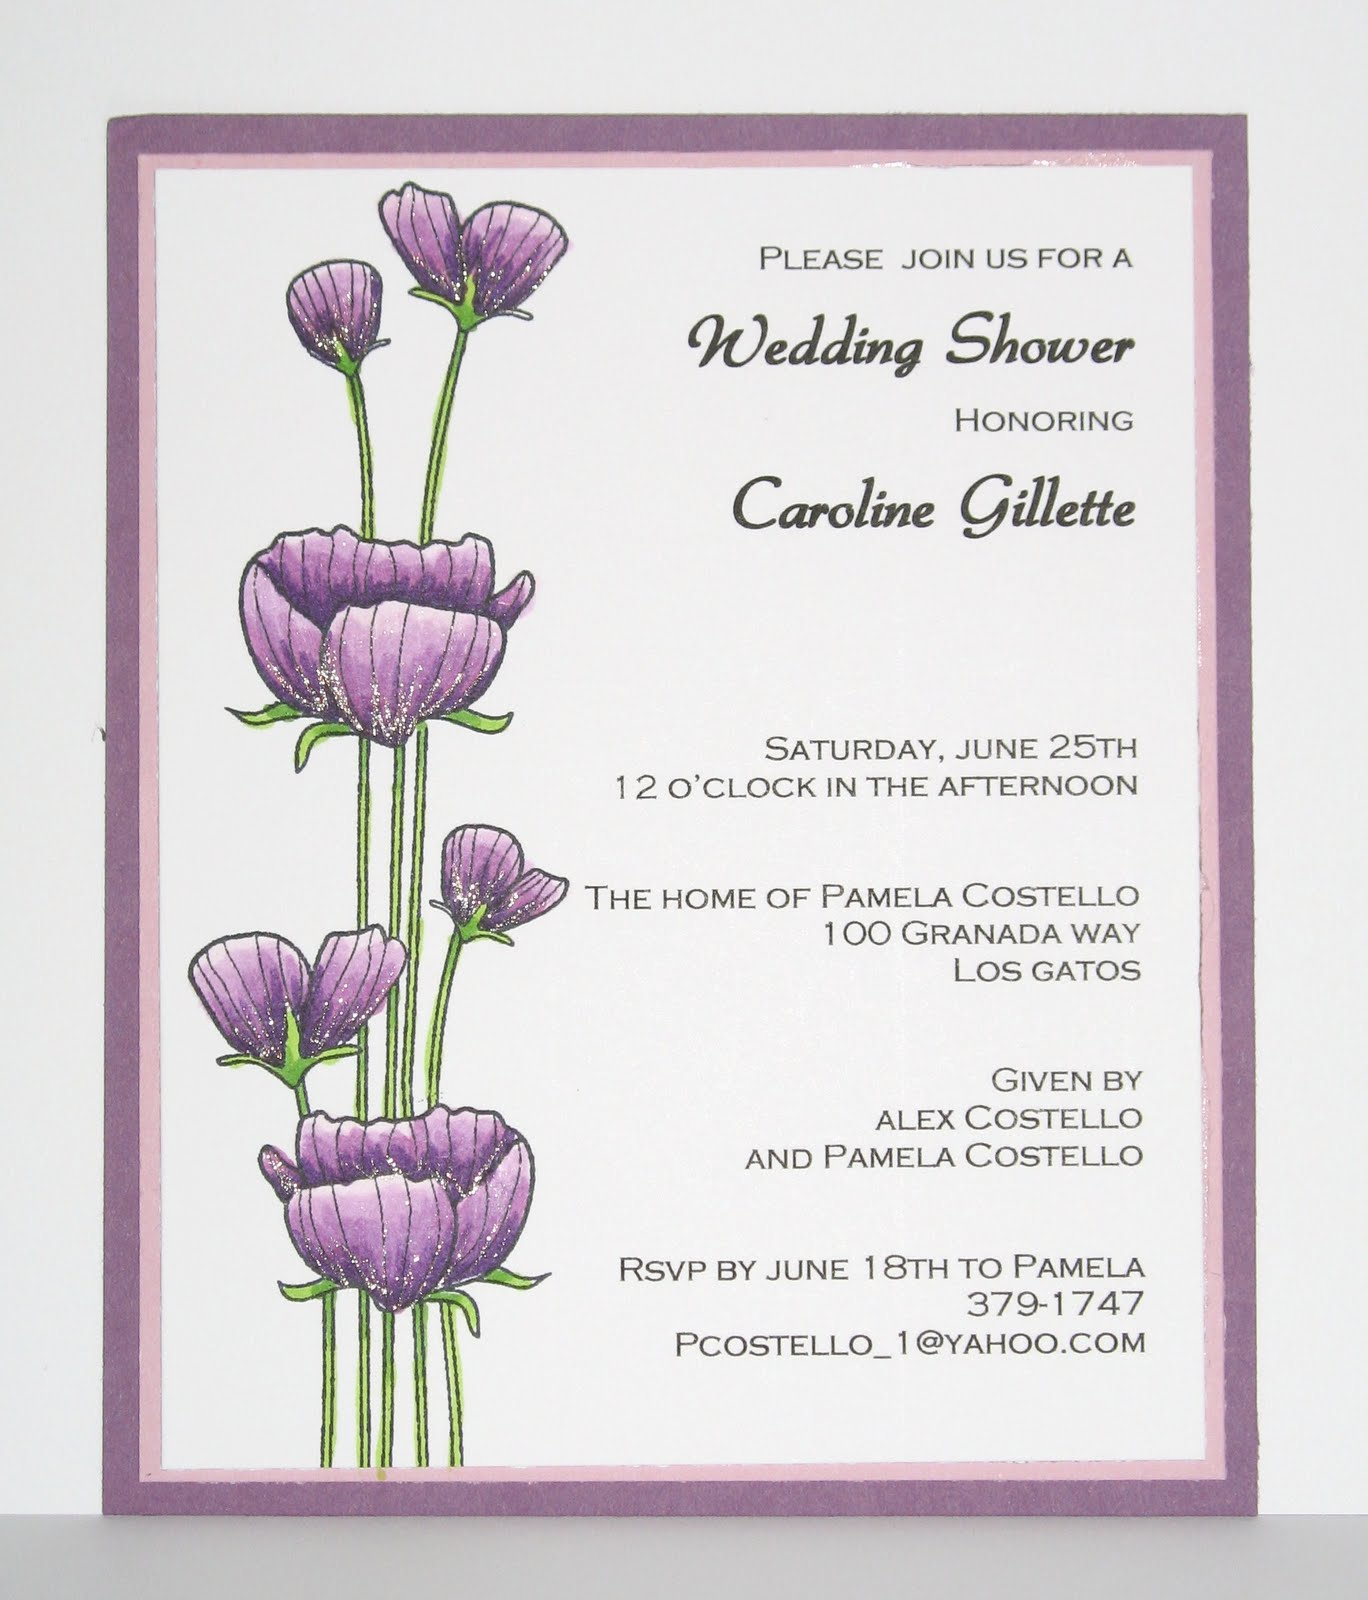 Sample Bridal Shower Invitations. Open Office Birthday Card Templates ...